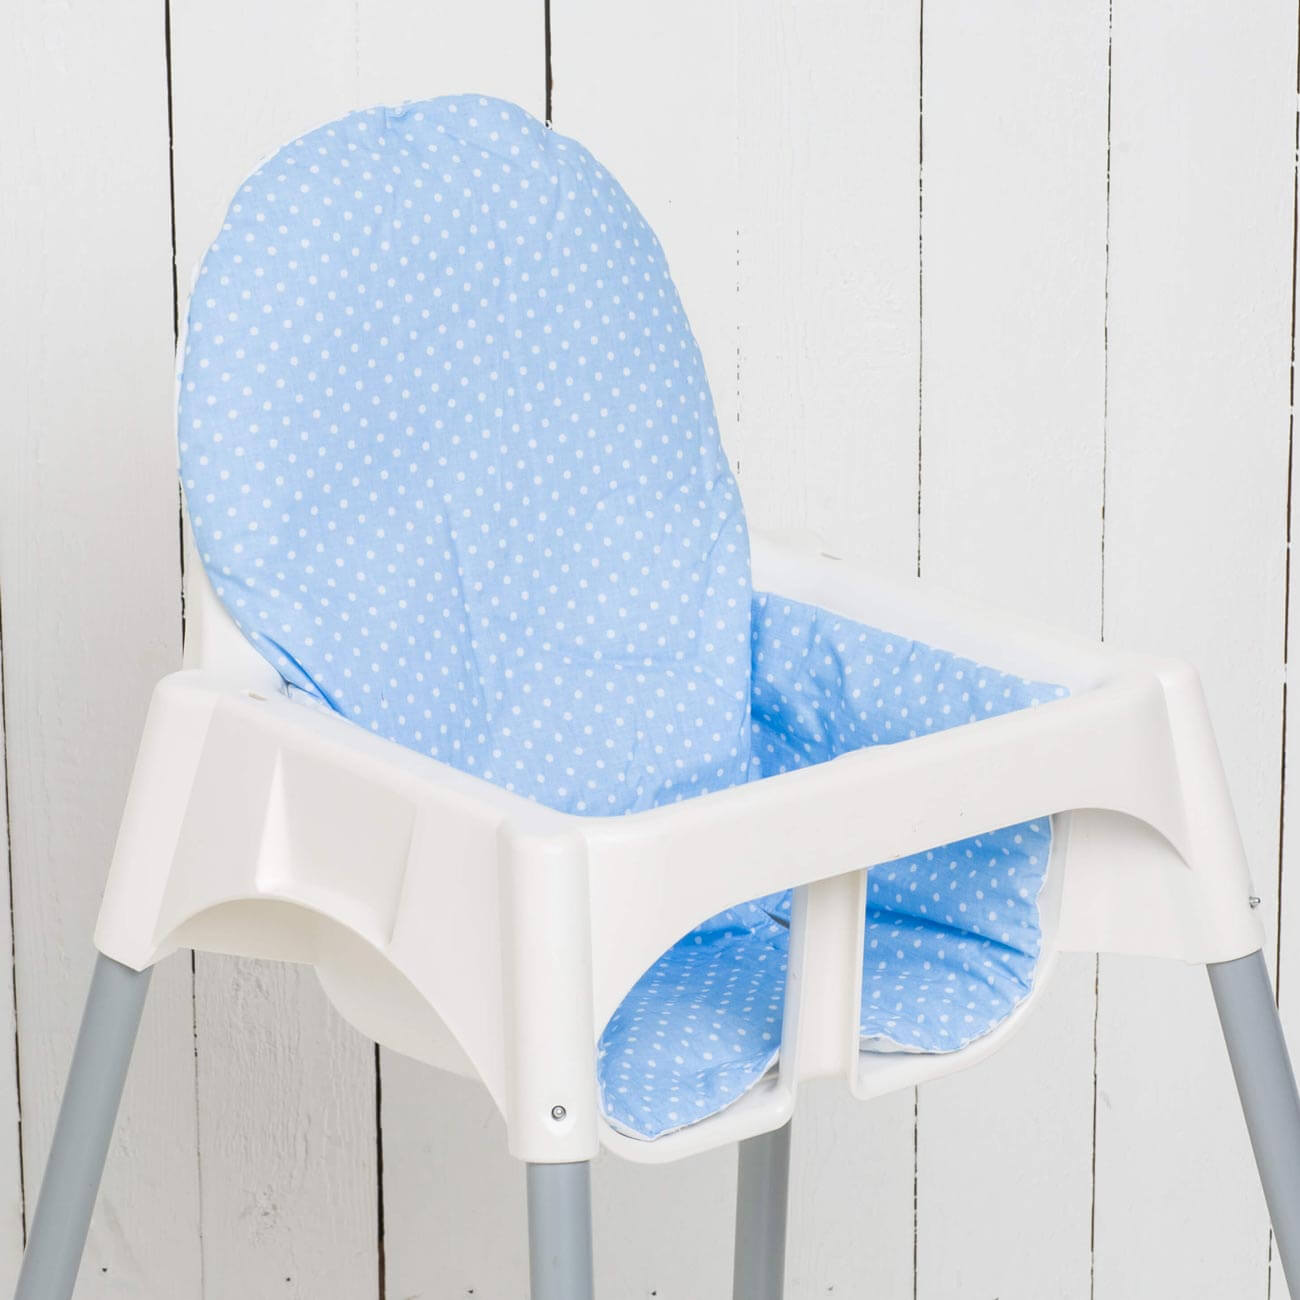 Seat cushion Jörn, dots/light blue matching IKEA high chair antelope